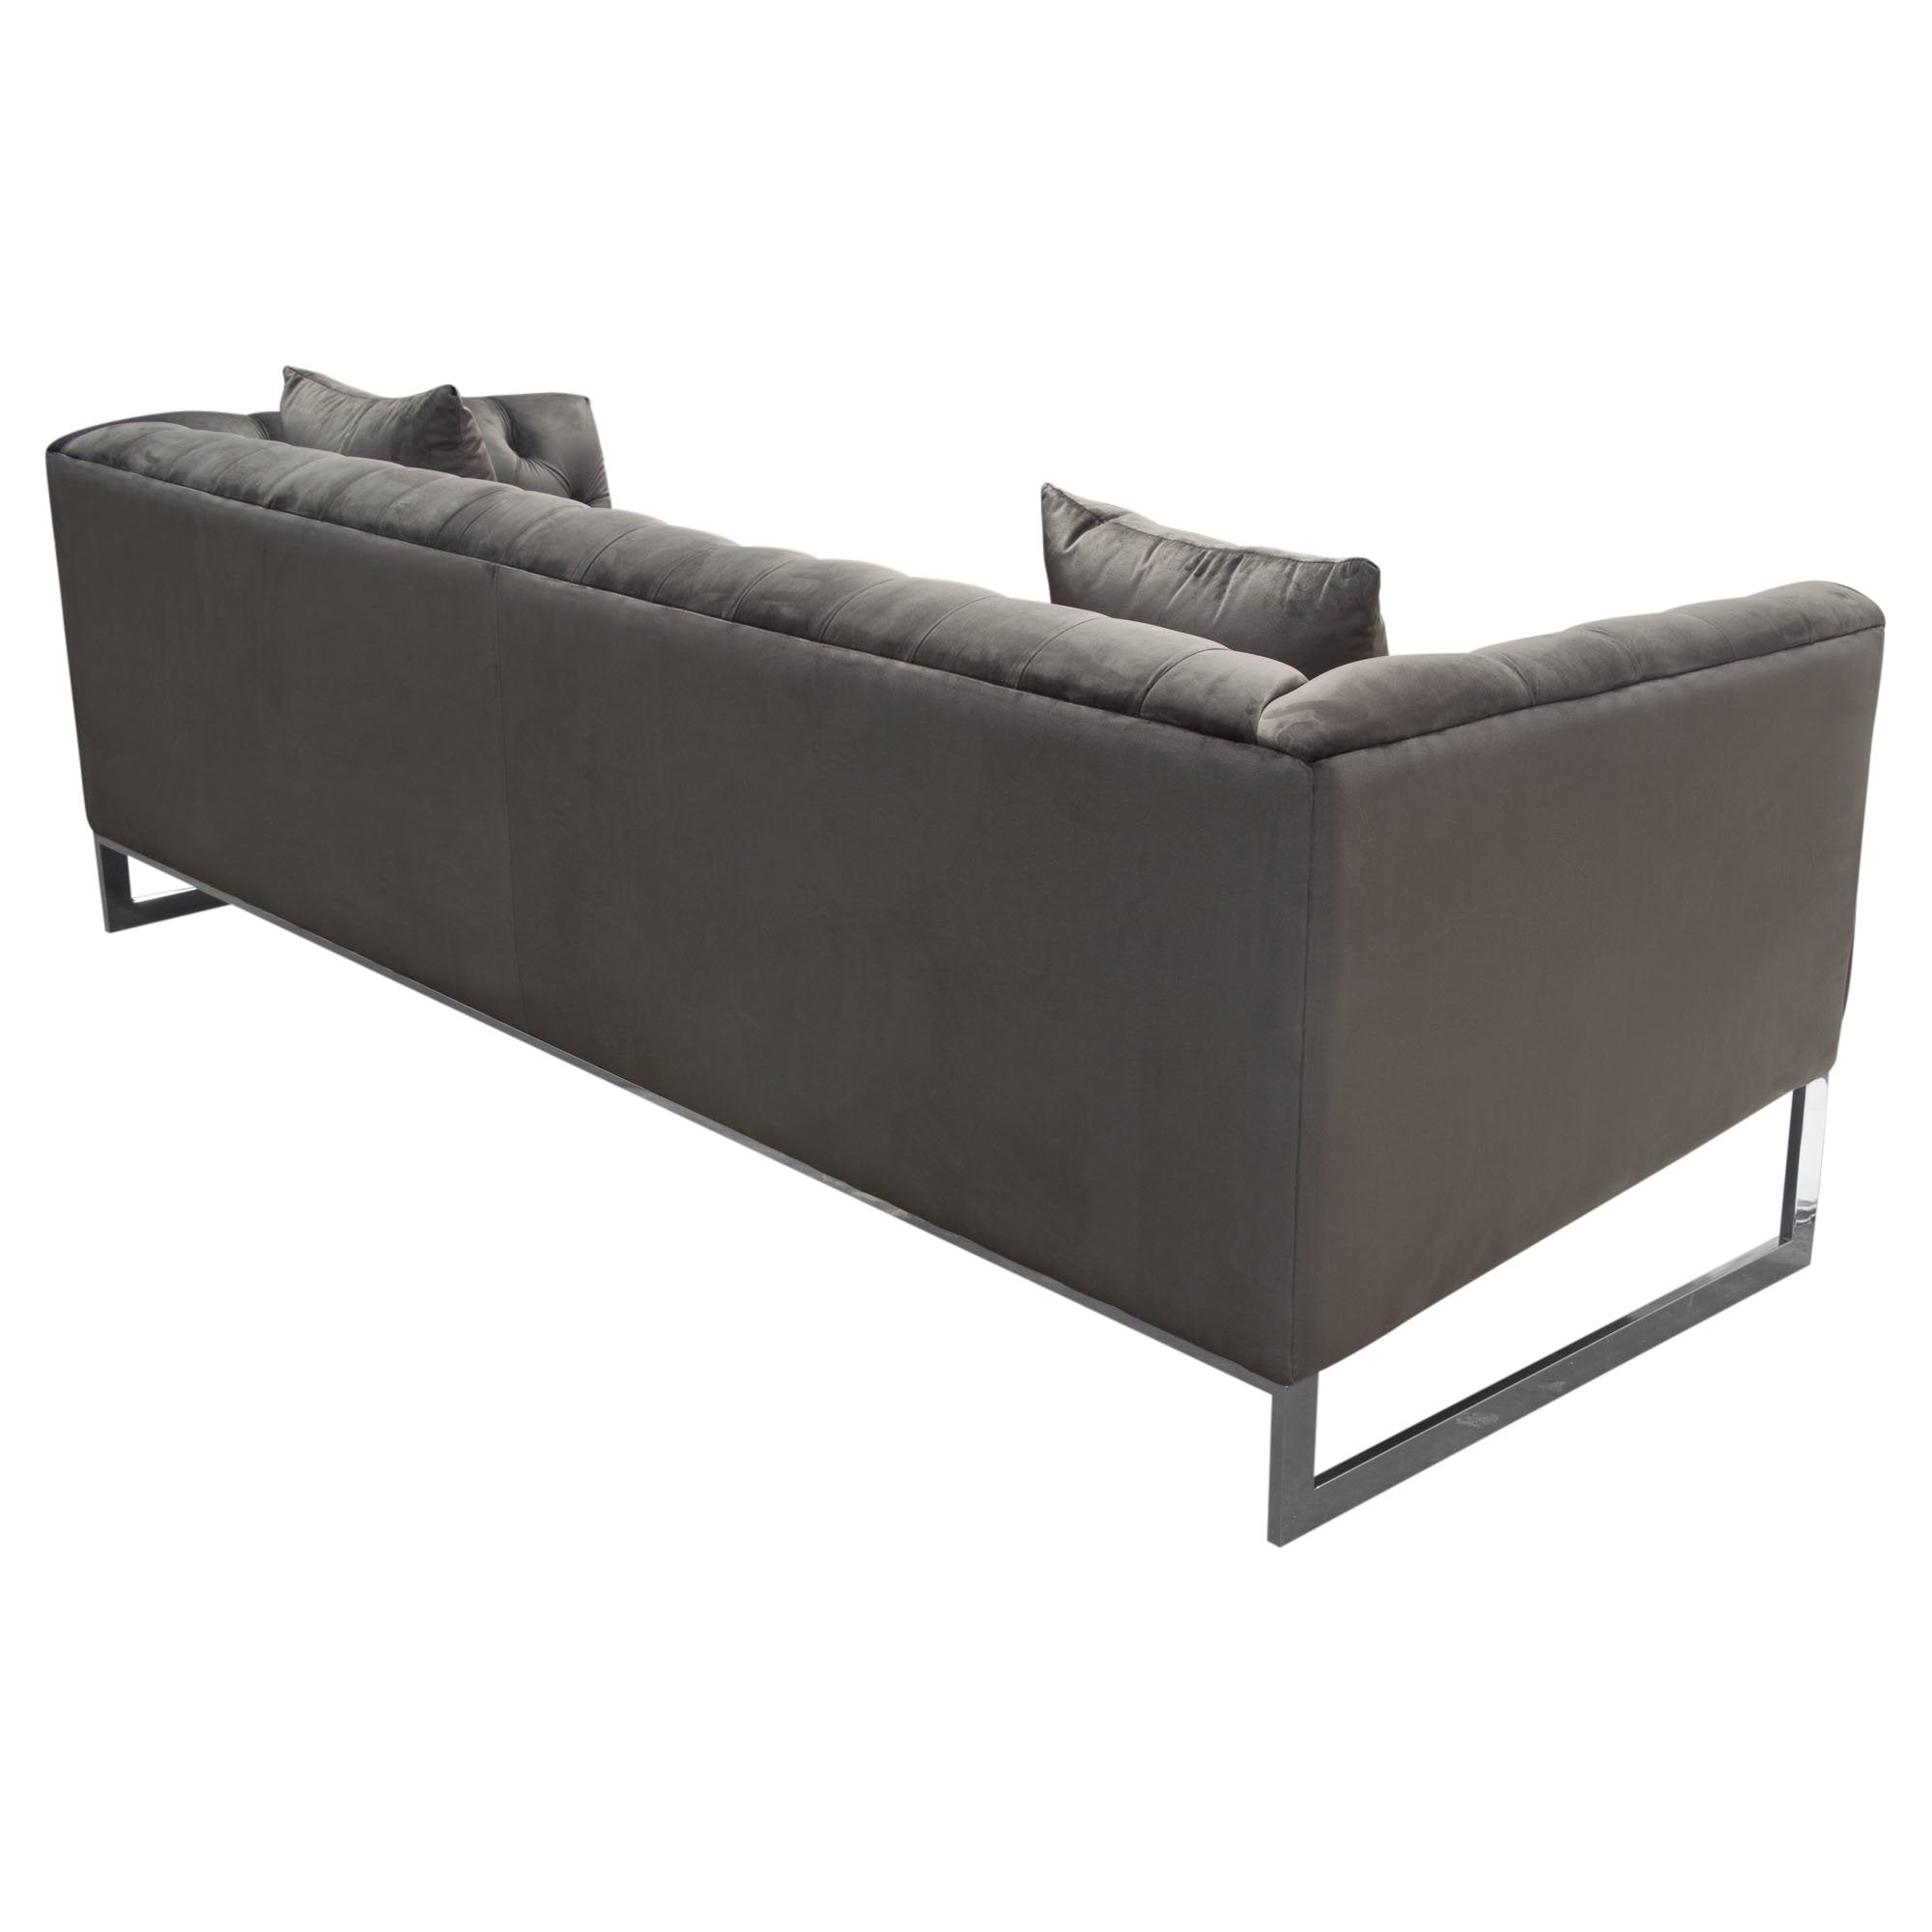 Crawford tufted sofa dusk grey